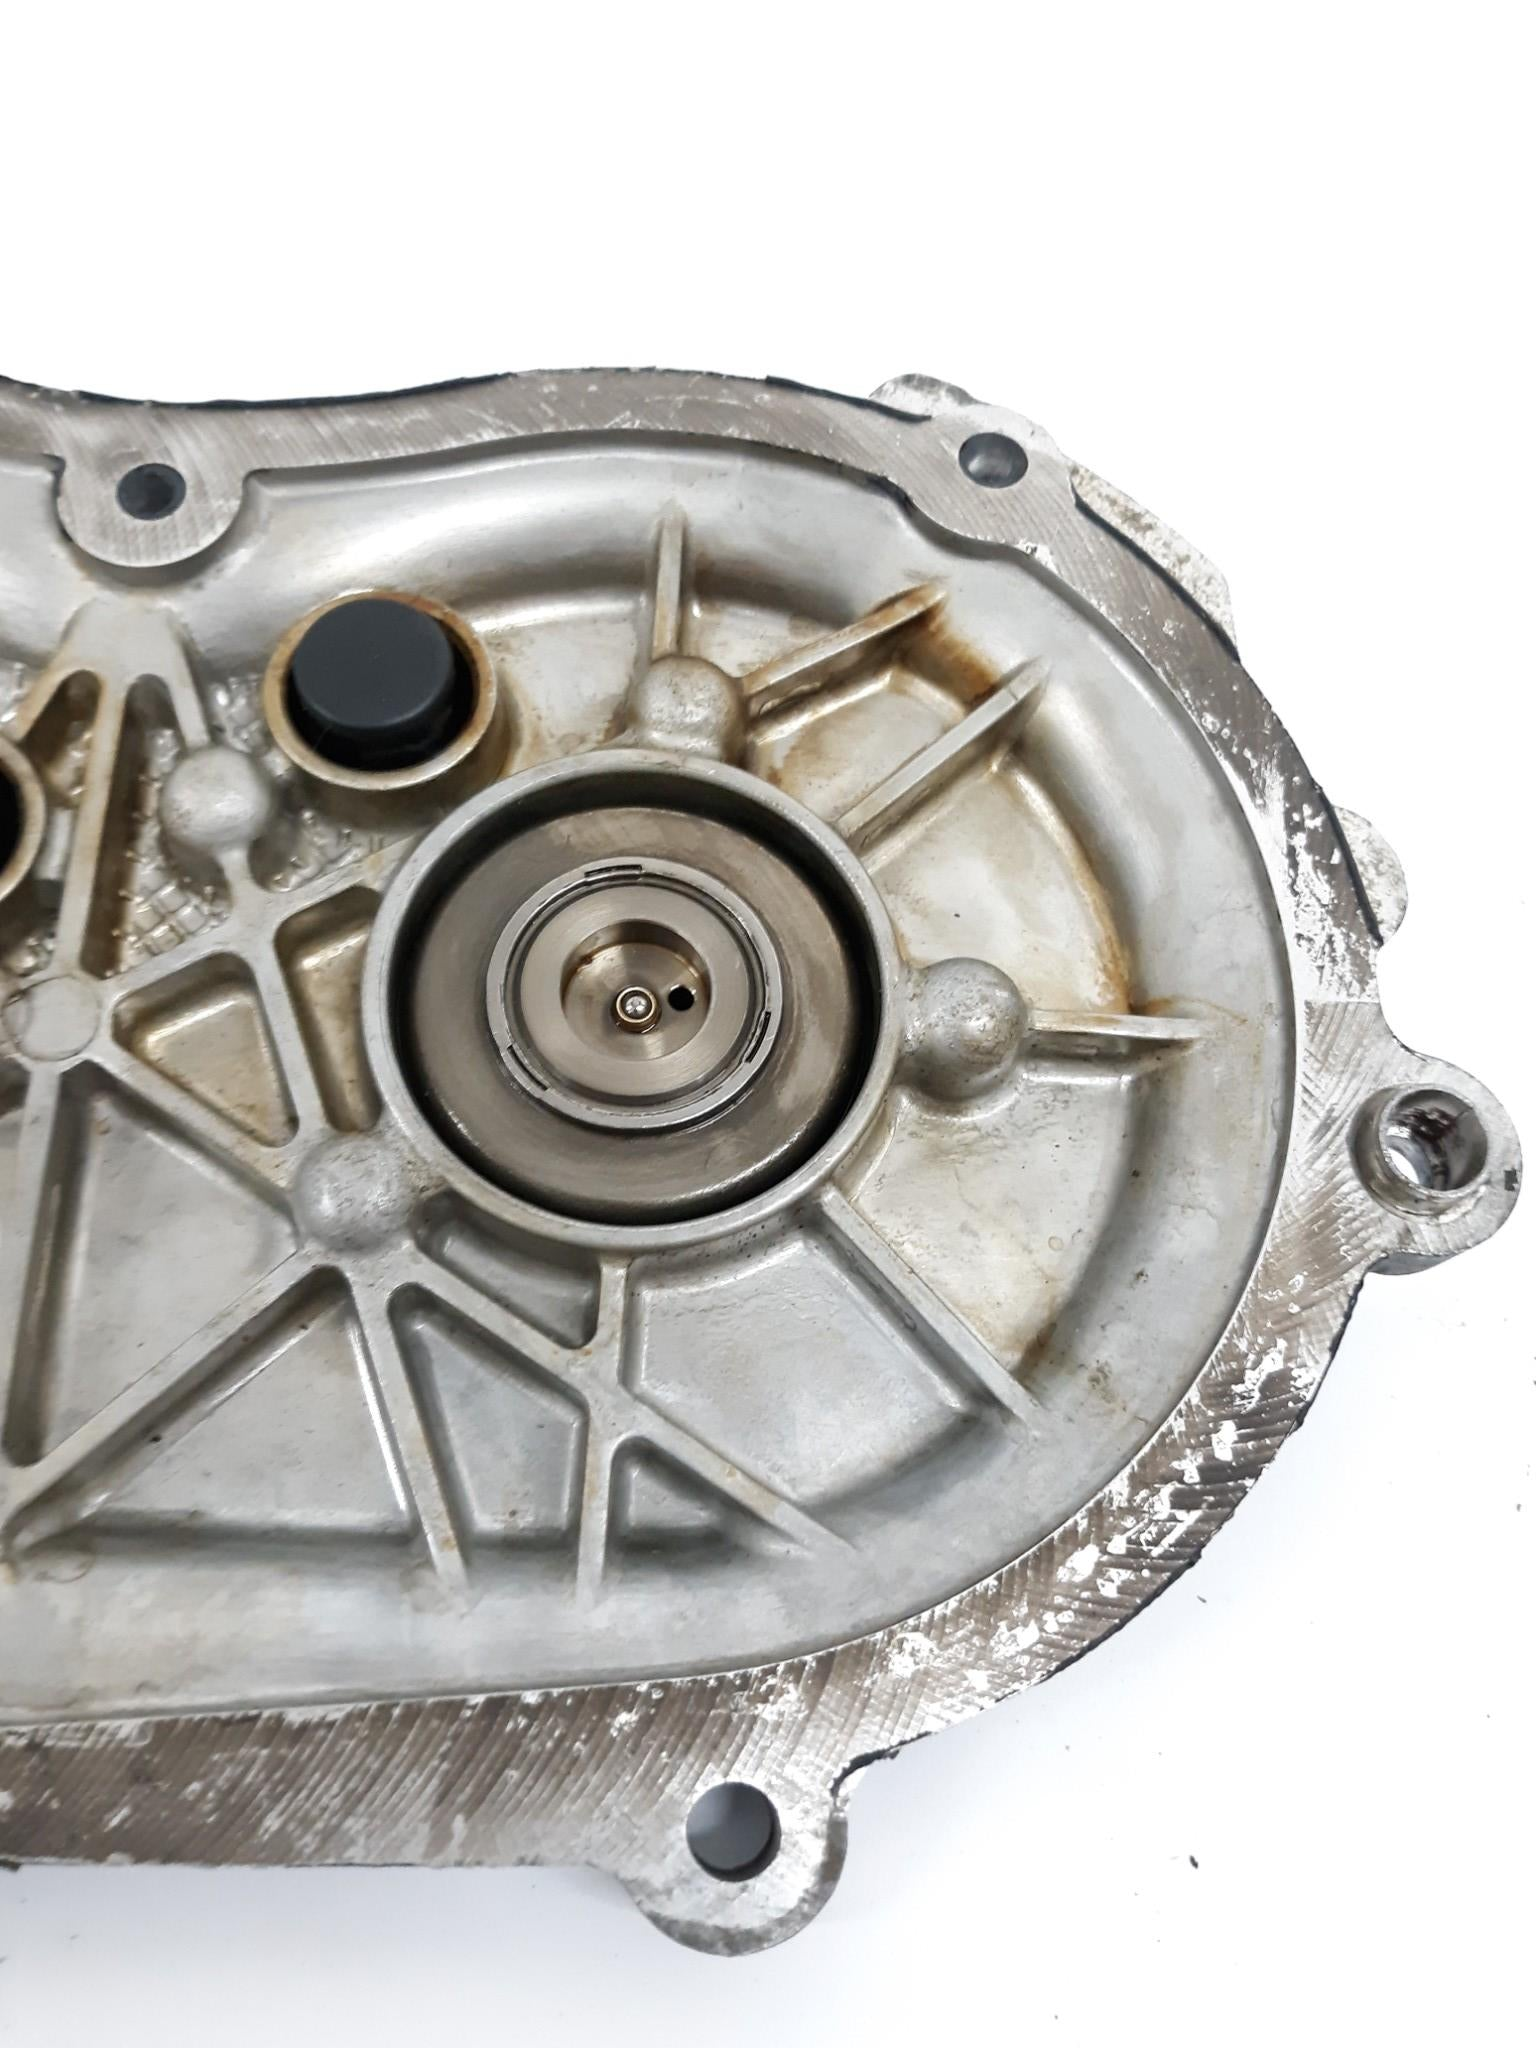 06-10 Mercedes W209 CLK350 C350 E350 Right Engine Timing Chain Cover Plate OEM - Click Receive Auto Parts